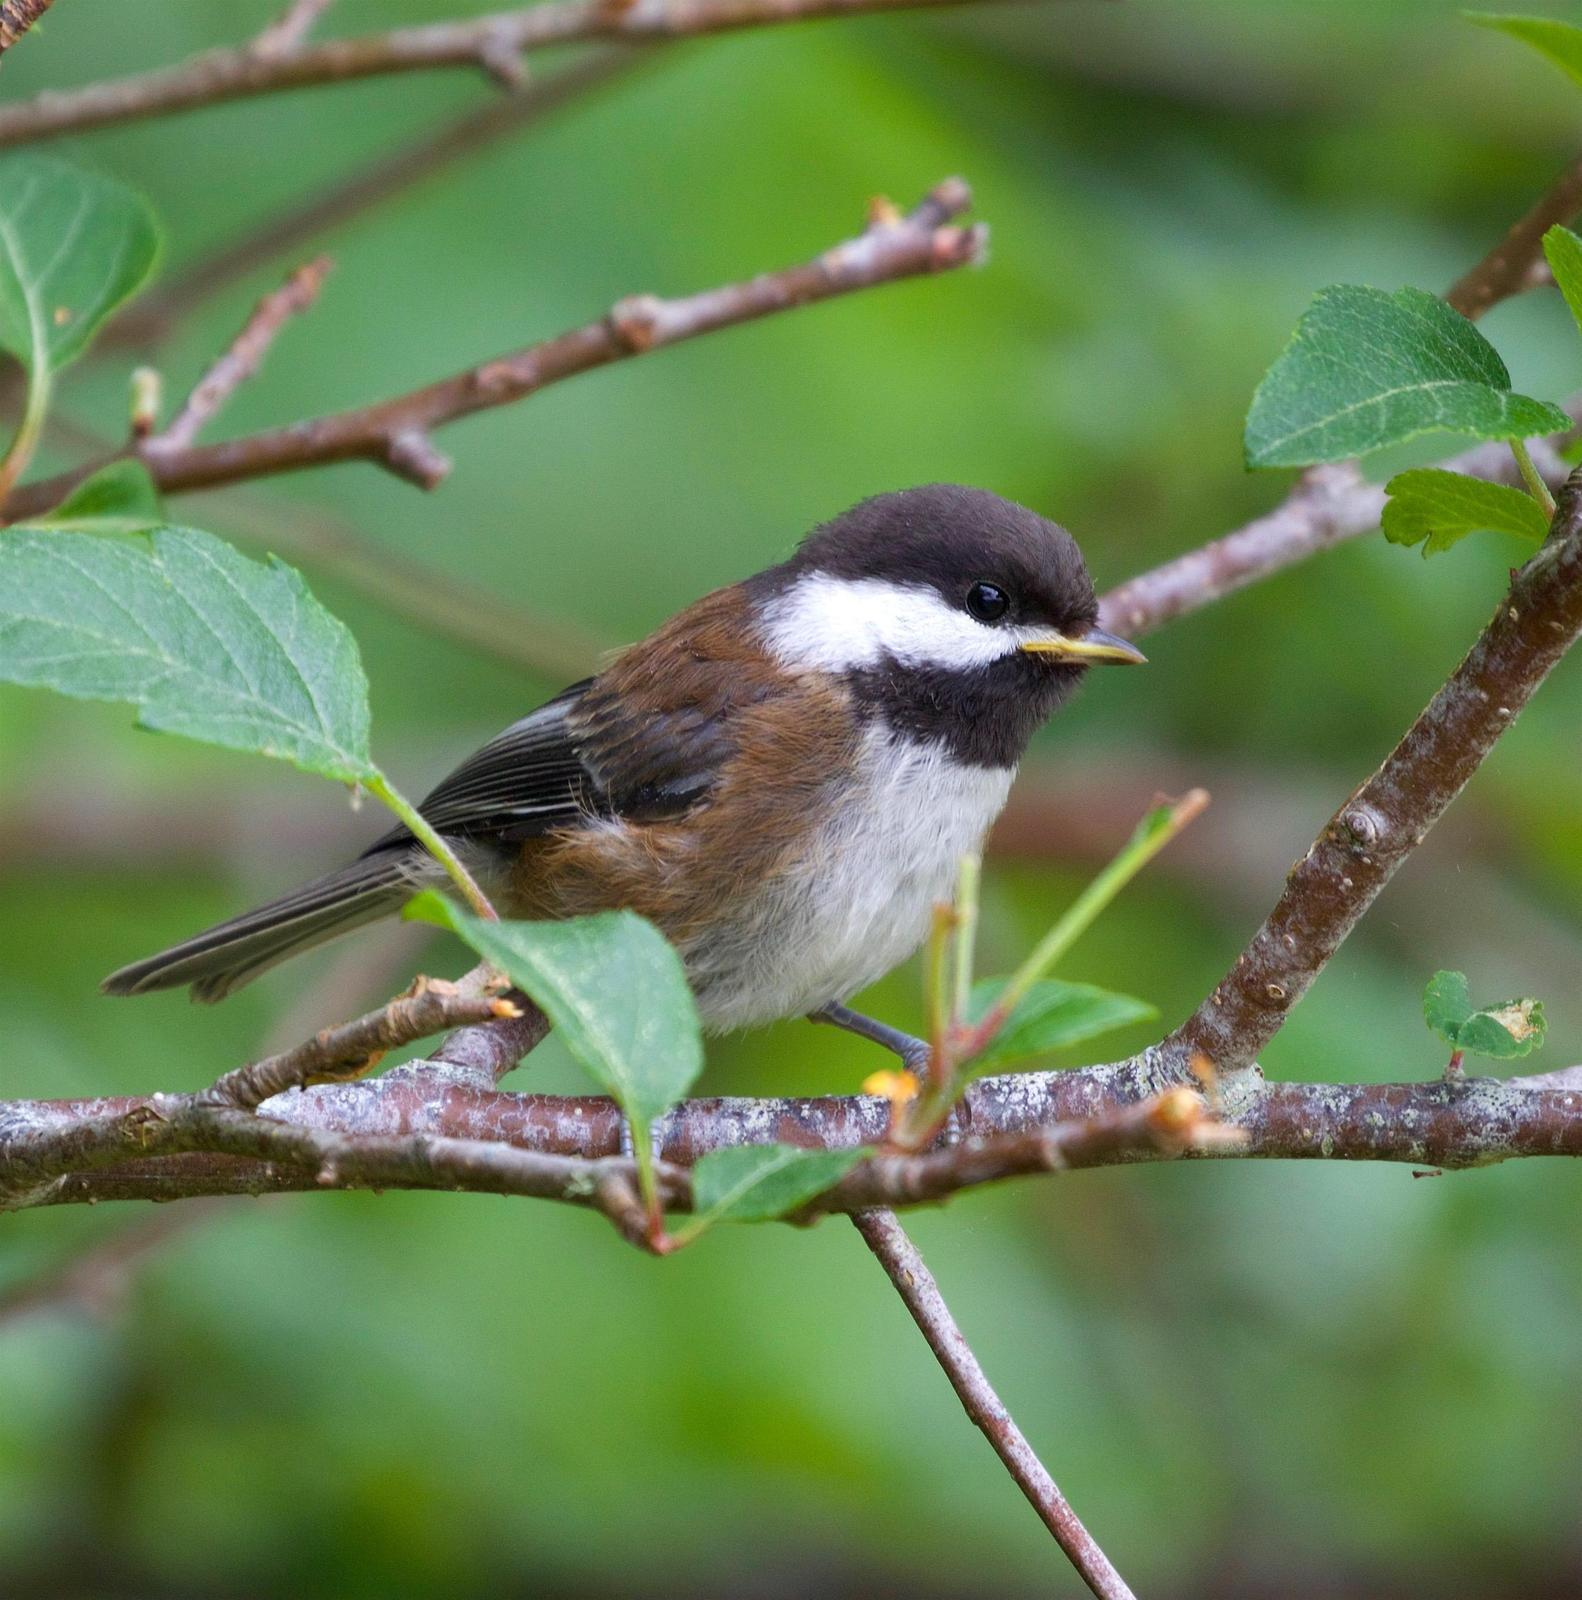 Chestnut-backed Chickadee Photo by Kathryn Keith